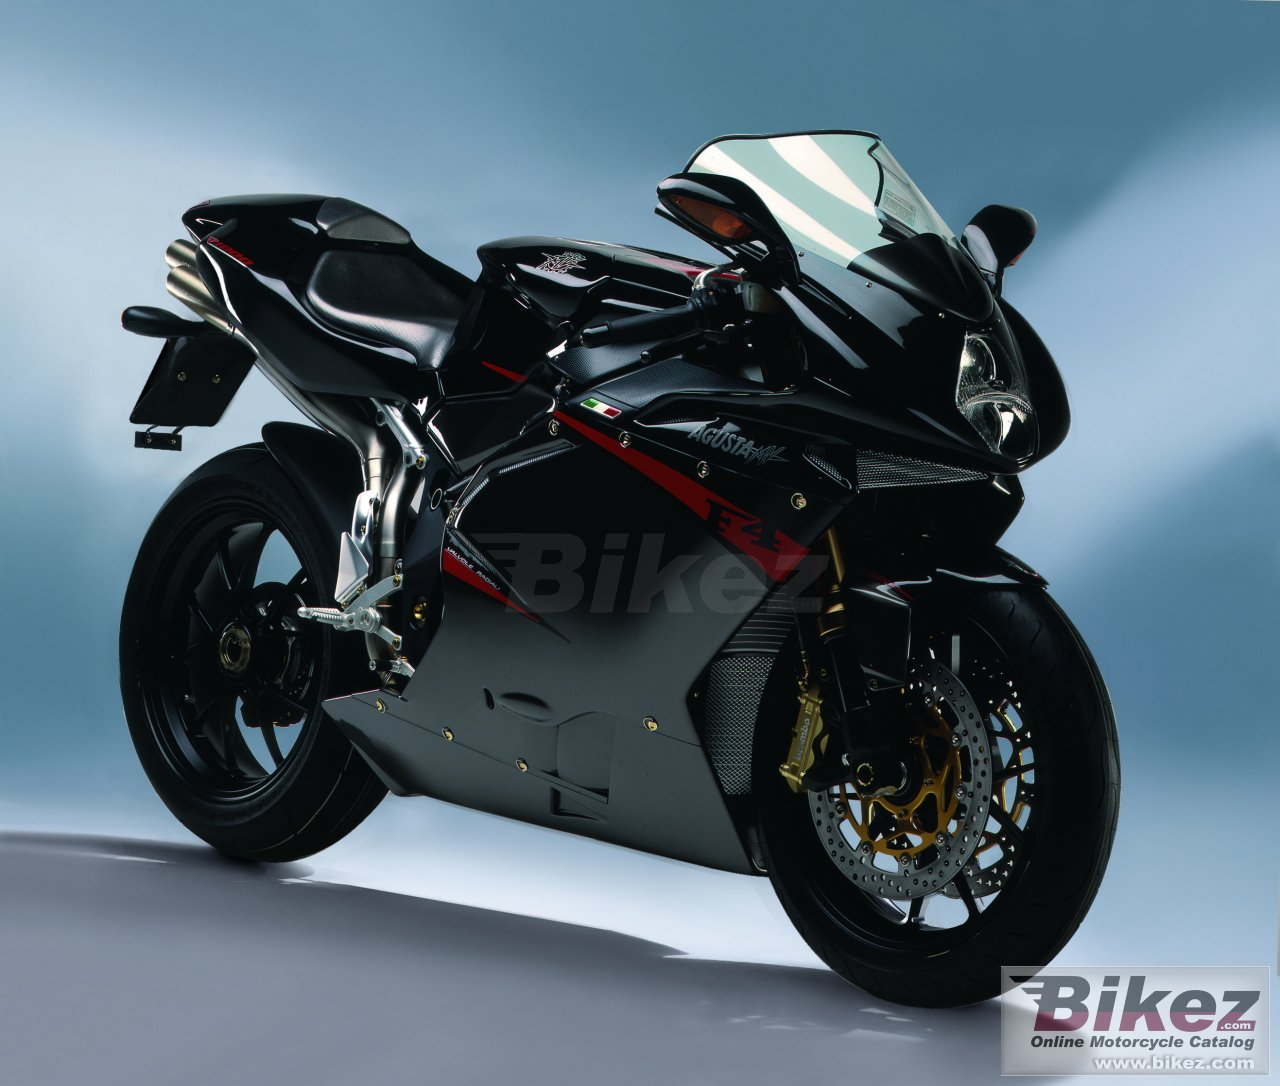 Big MV Agusta f4 1000 r picture and wallpaper from Bikez.com